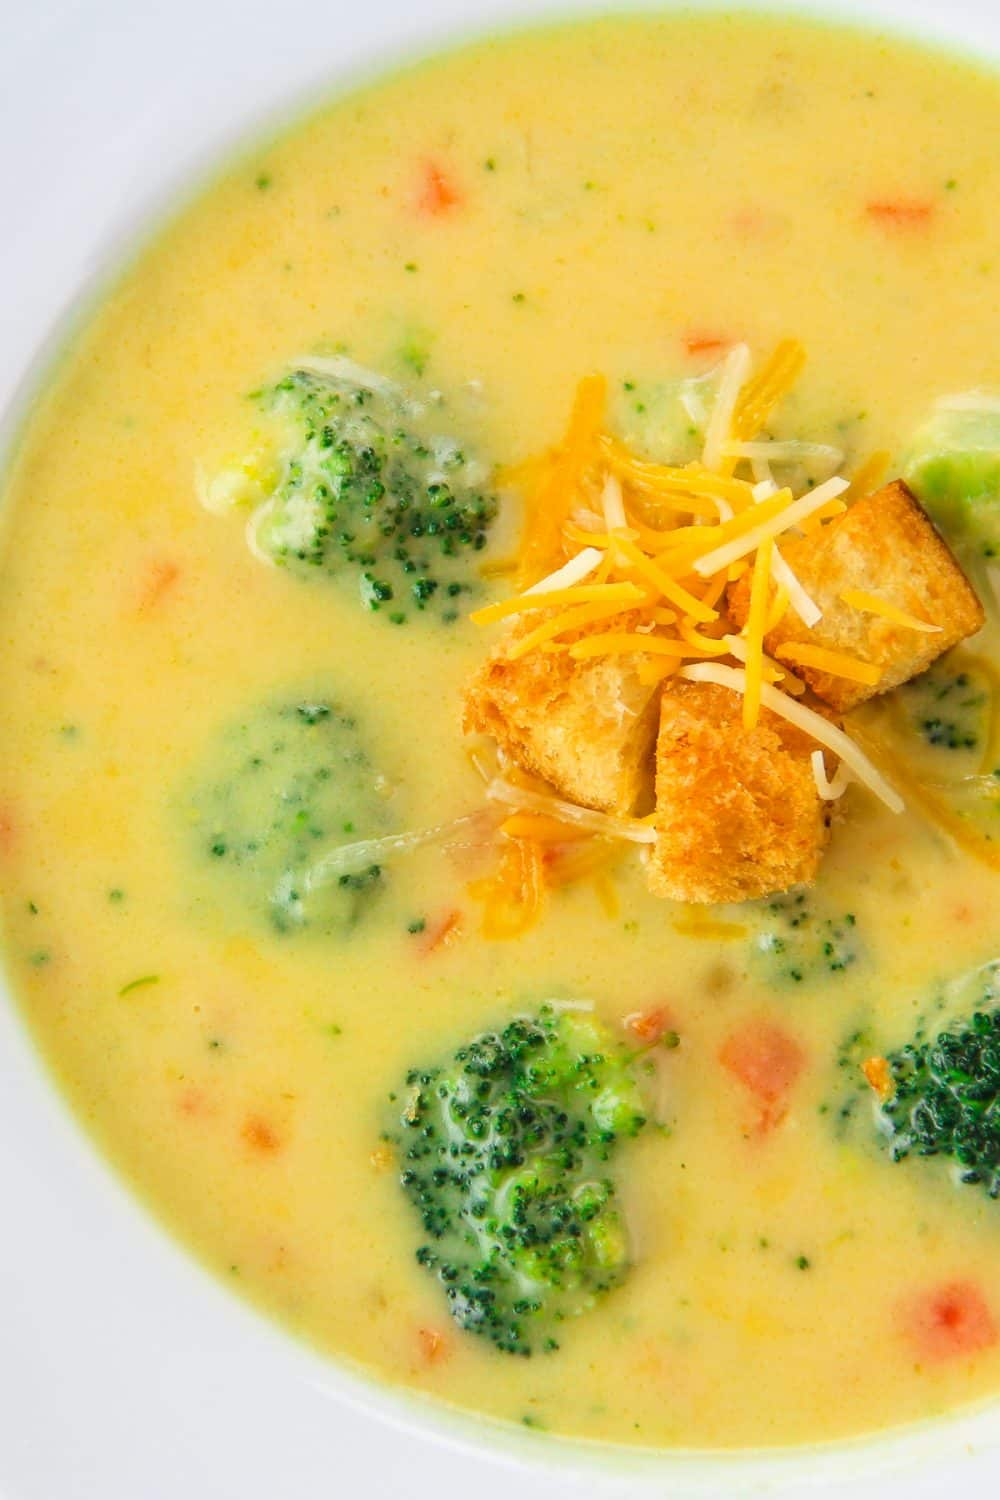 Overhead picture of a white bowl filled with panera bread broccoli cheddar soup recipe topped with croutons and shredded cheese